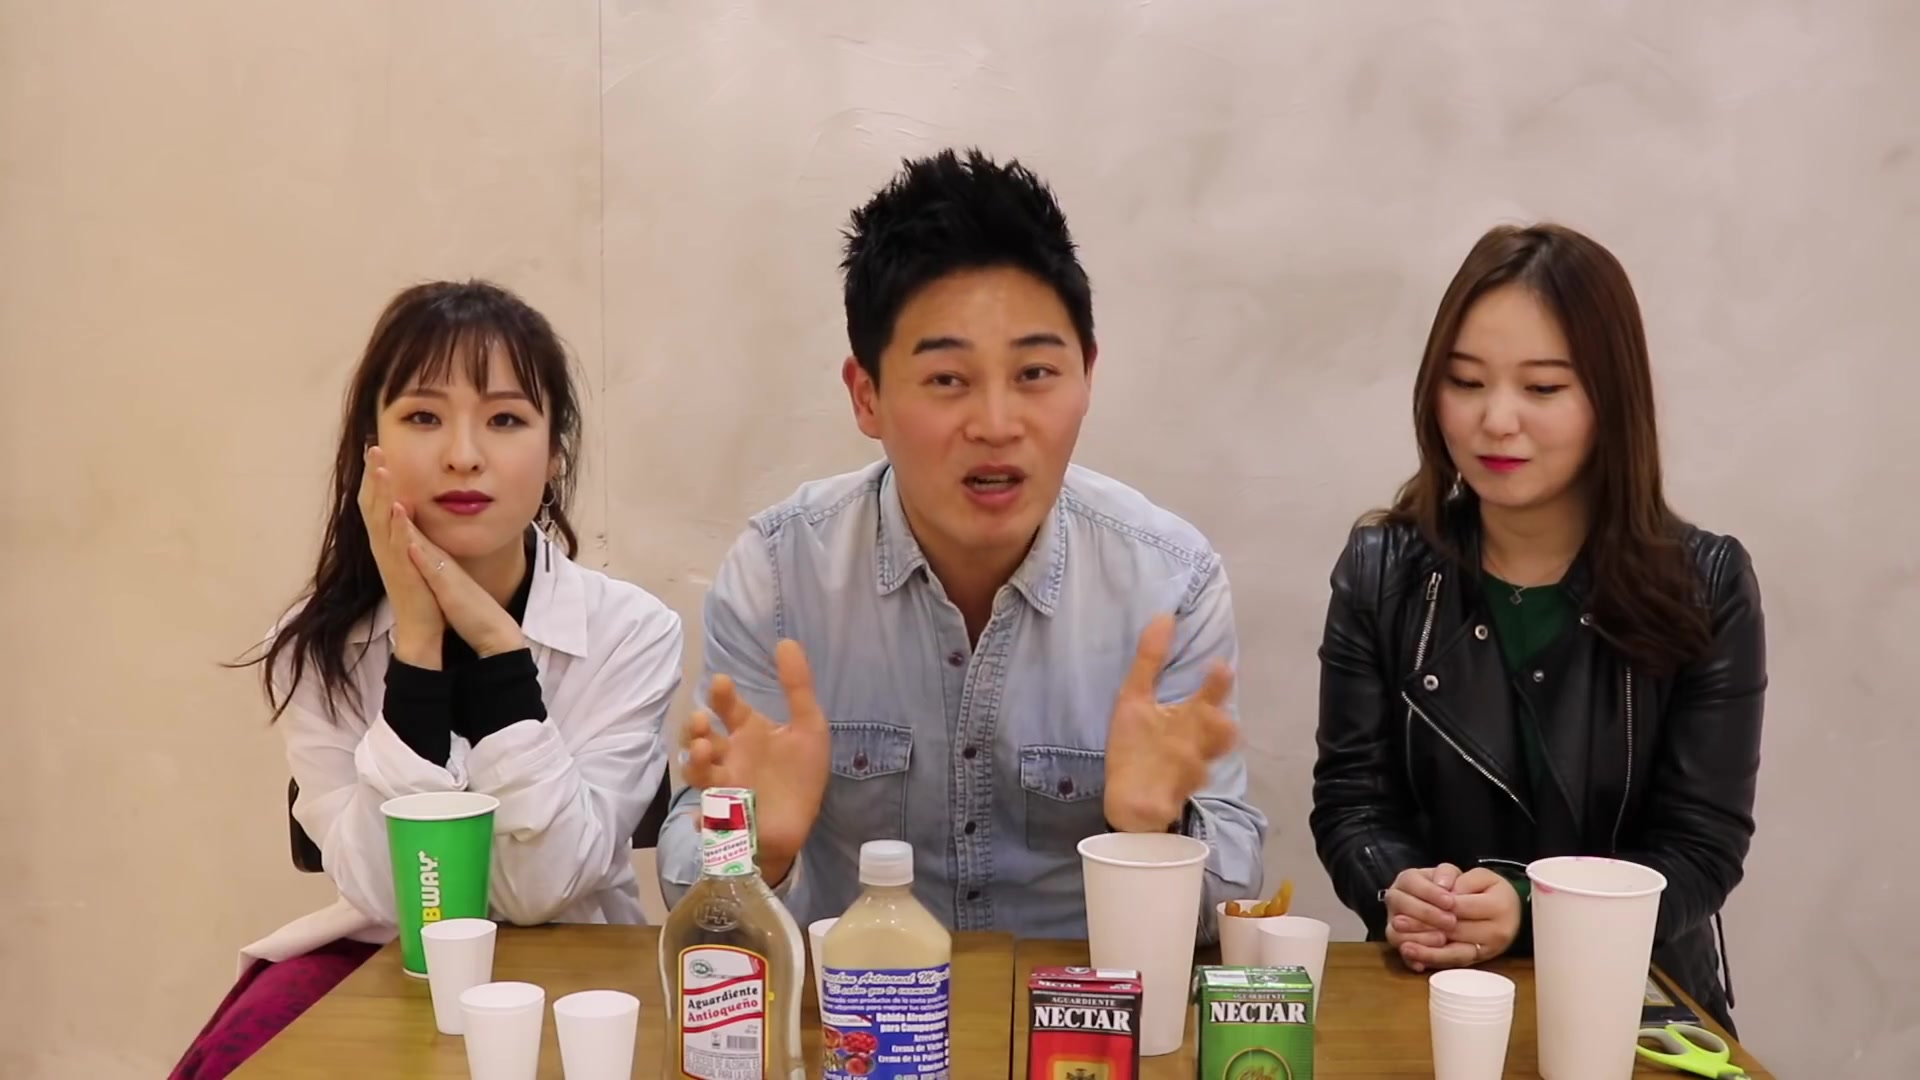 Todo Sobre Corea del Sur Episode 144: Koreans Try Aguardiente for the First Time